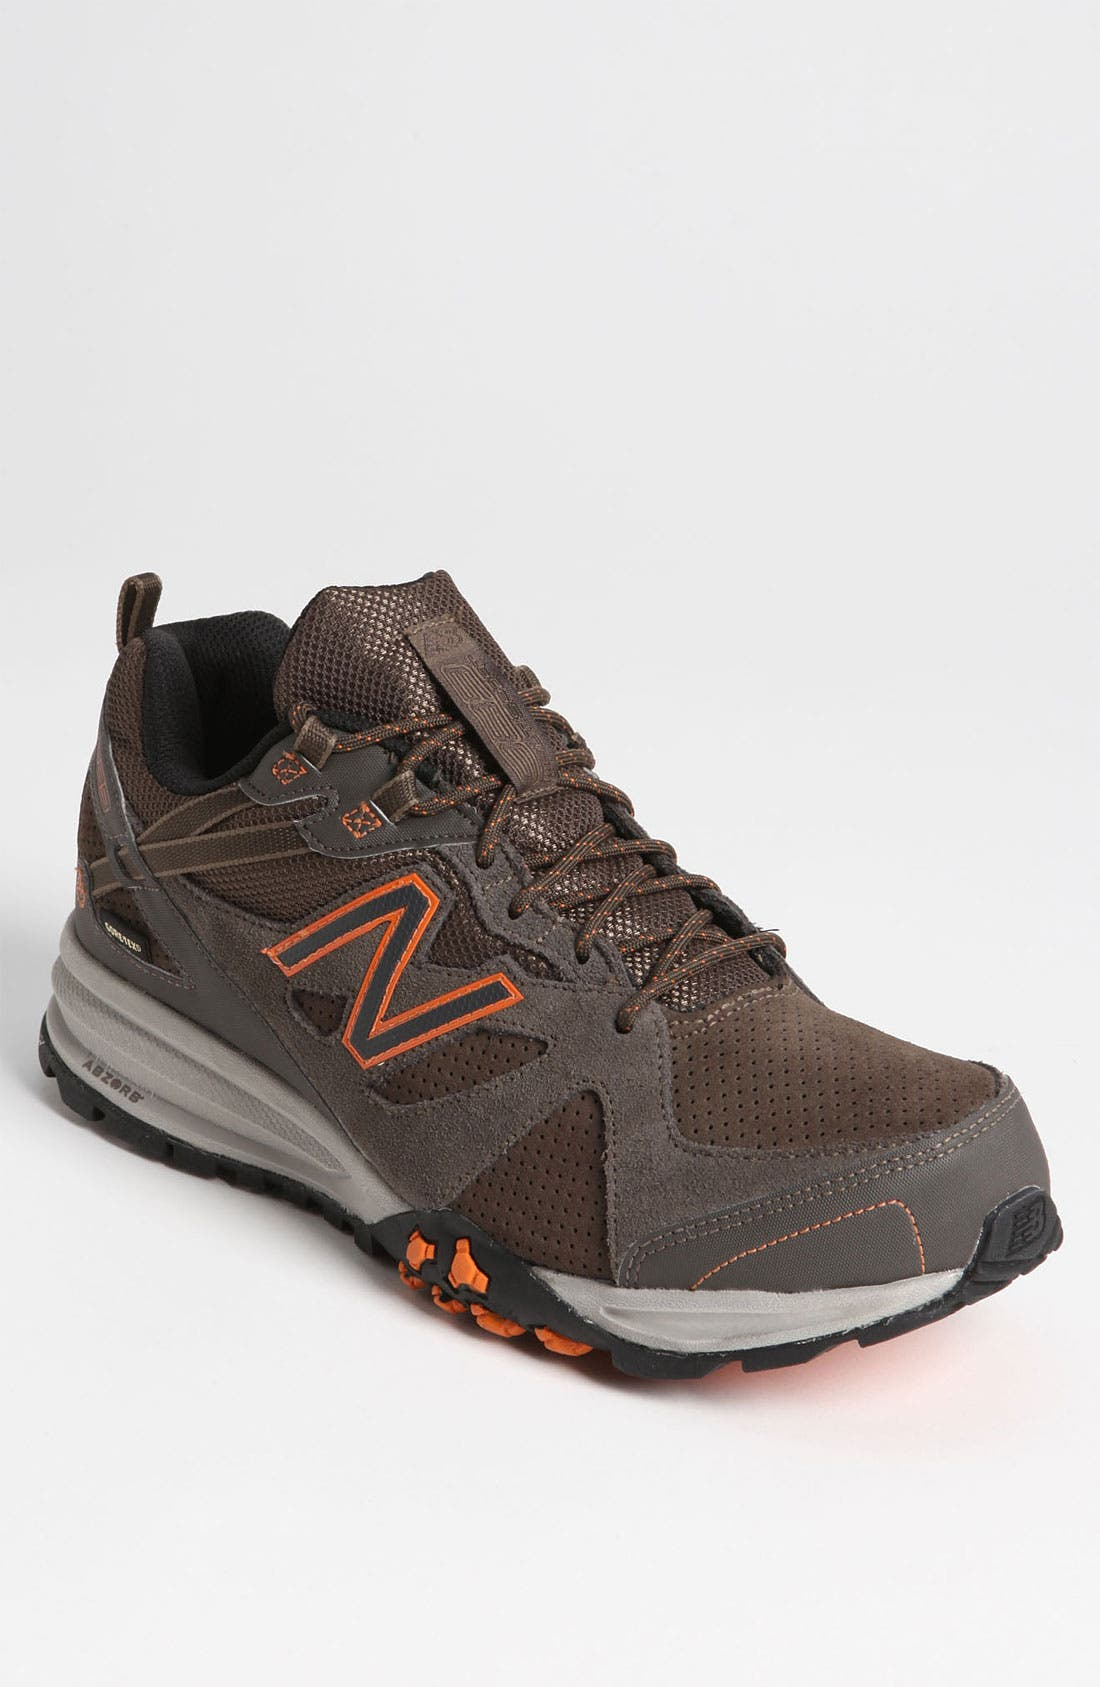 Main Image - NEW BALANCE 989 HIKING SHOE